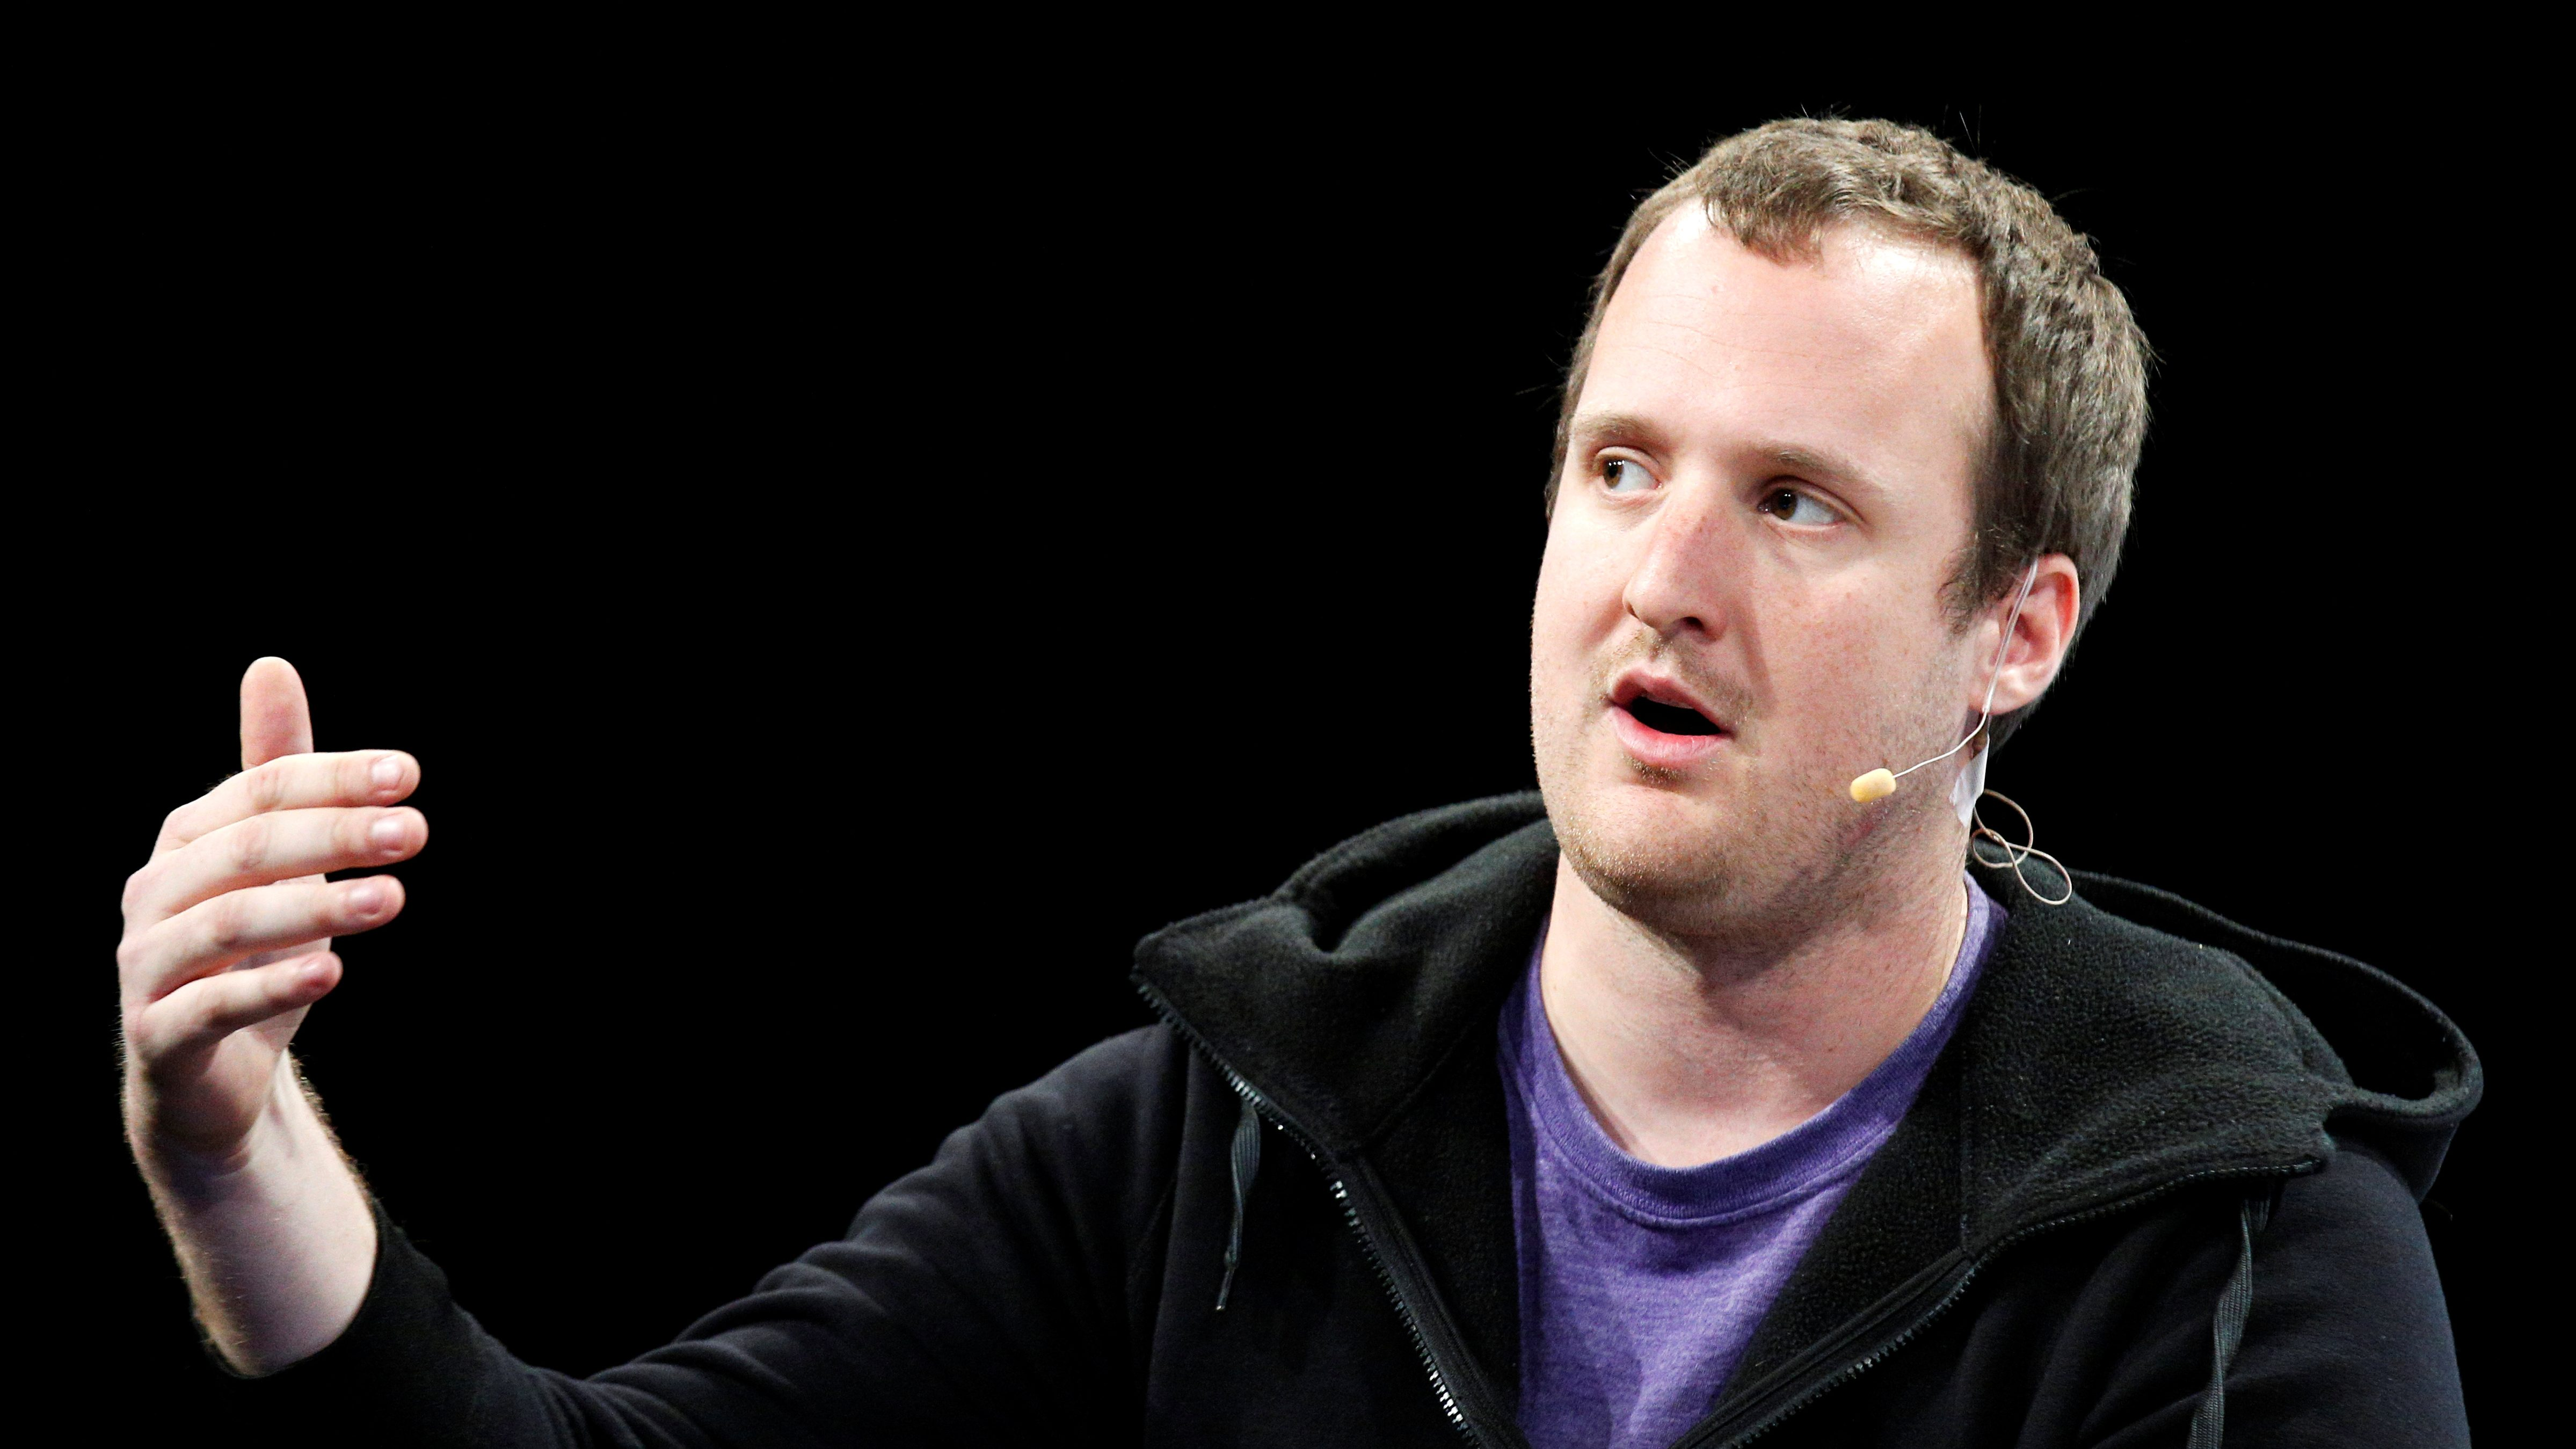 Ted Livingston, CEO of Kik, wanted to beat Facebook to crypto